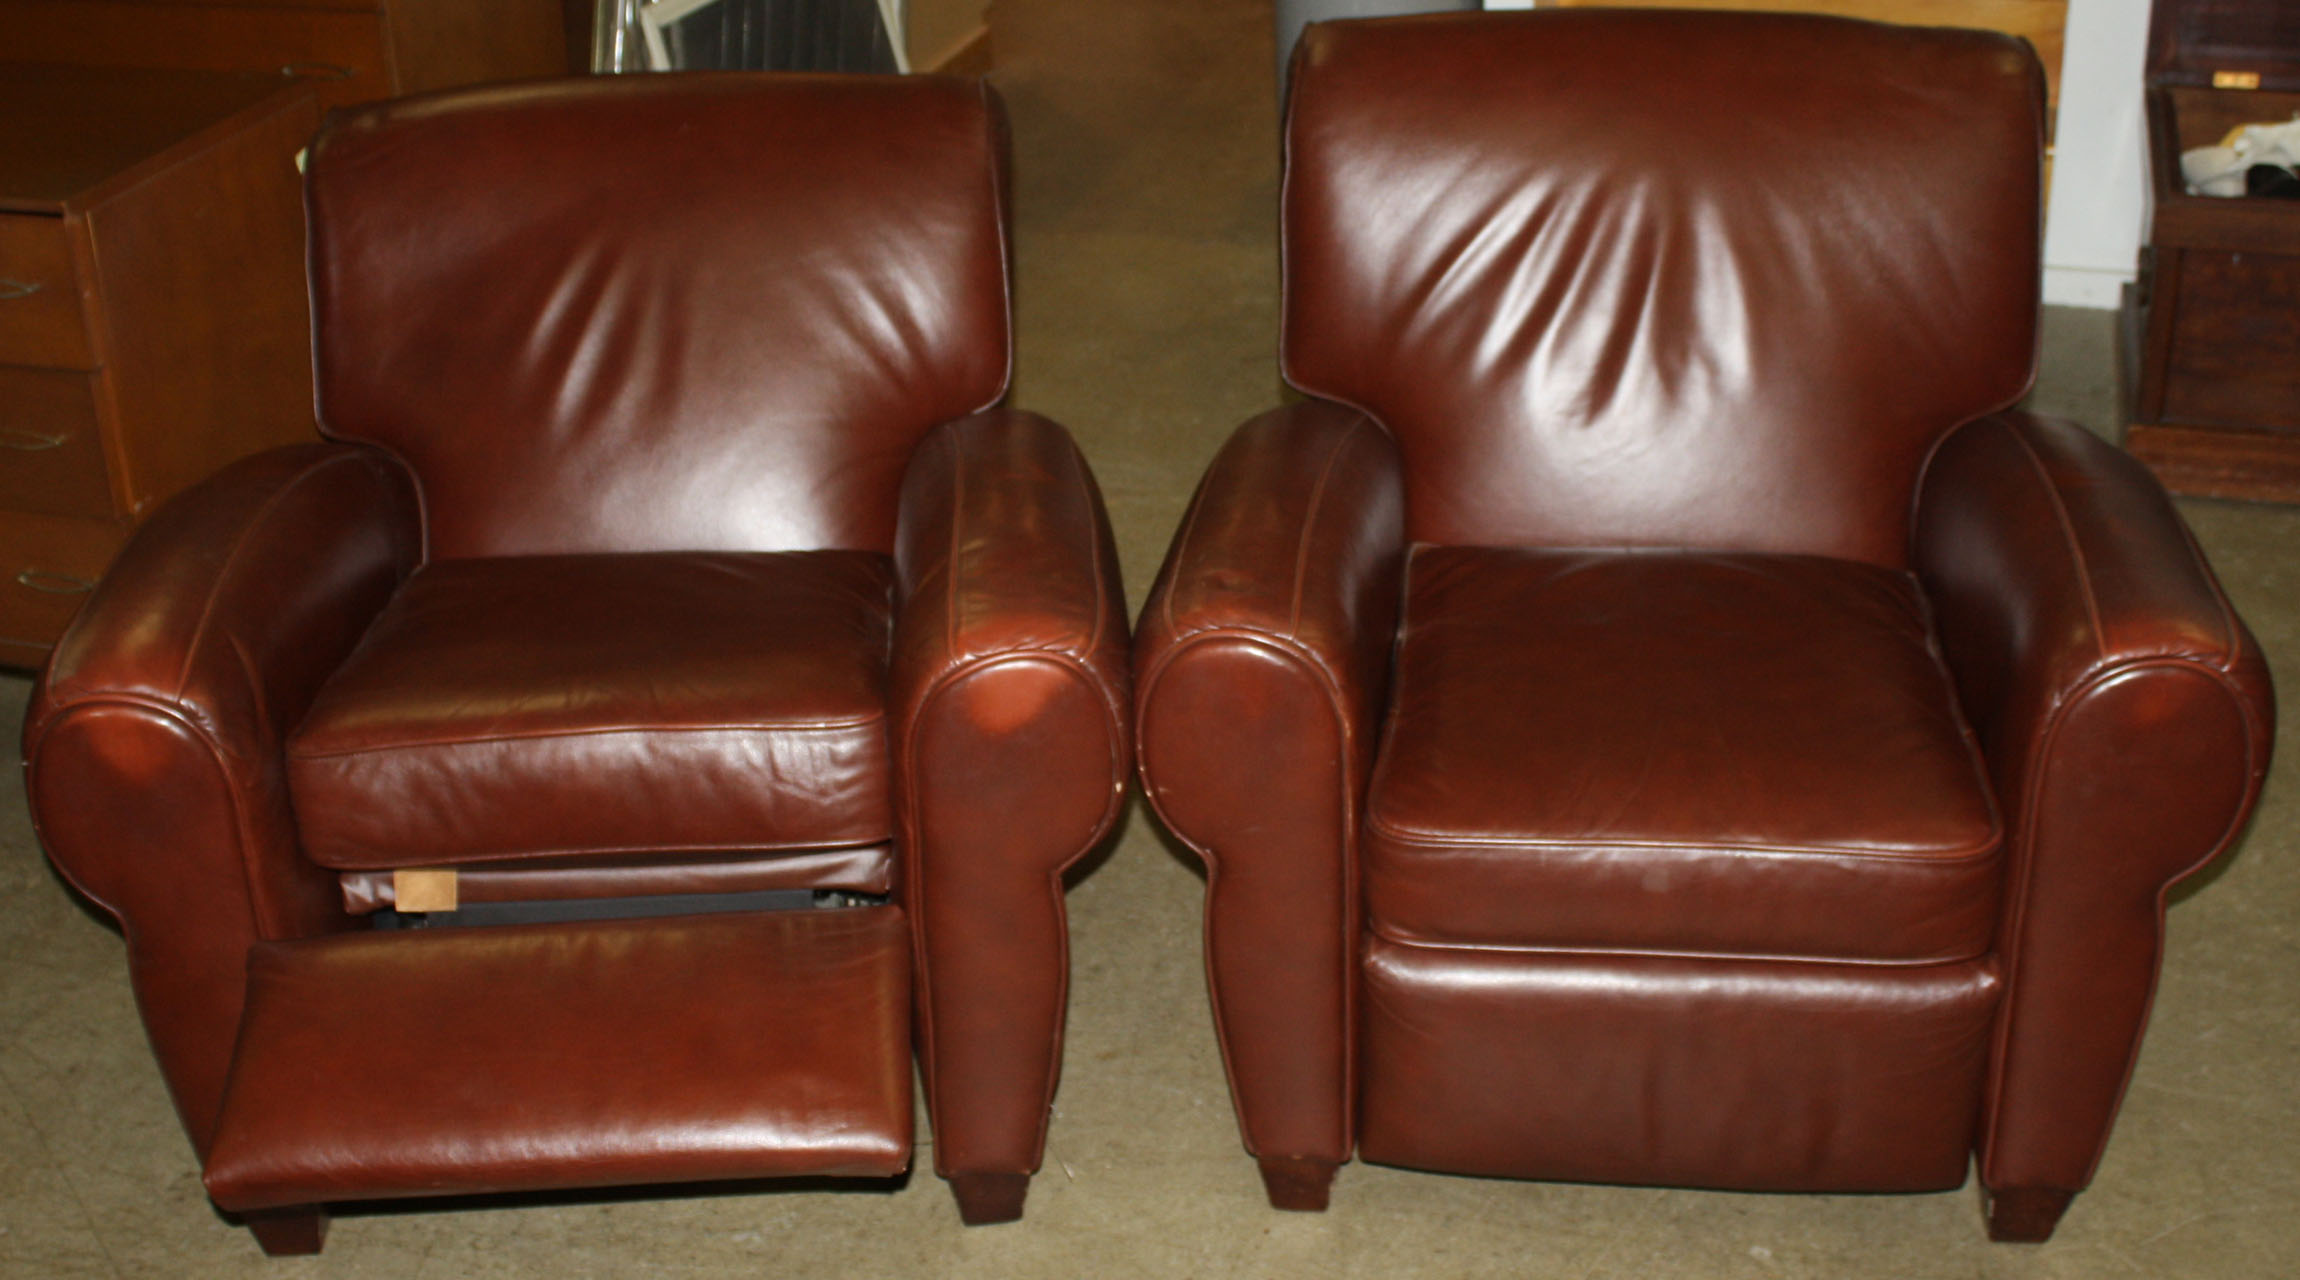 Pair Of Barcalounger Leather Club Chairs.JPG